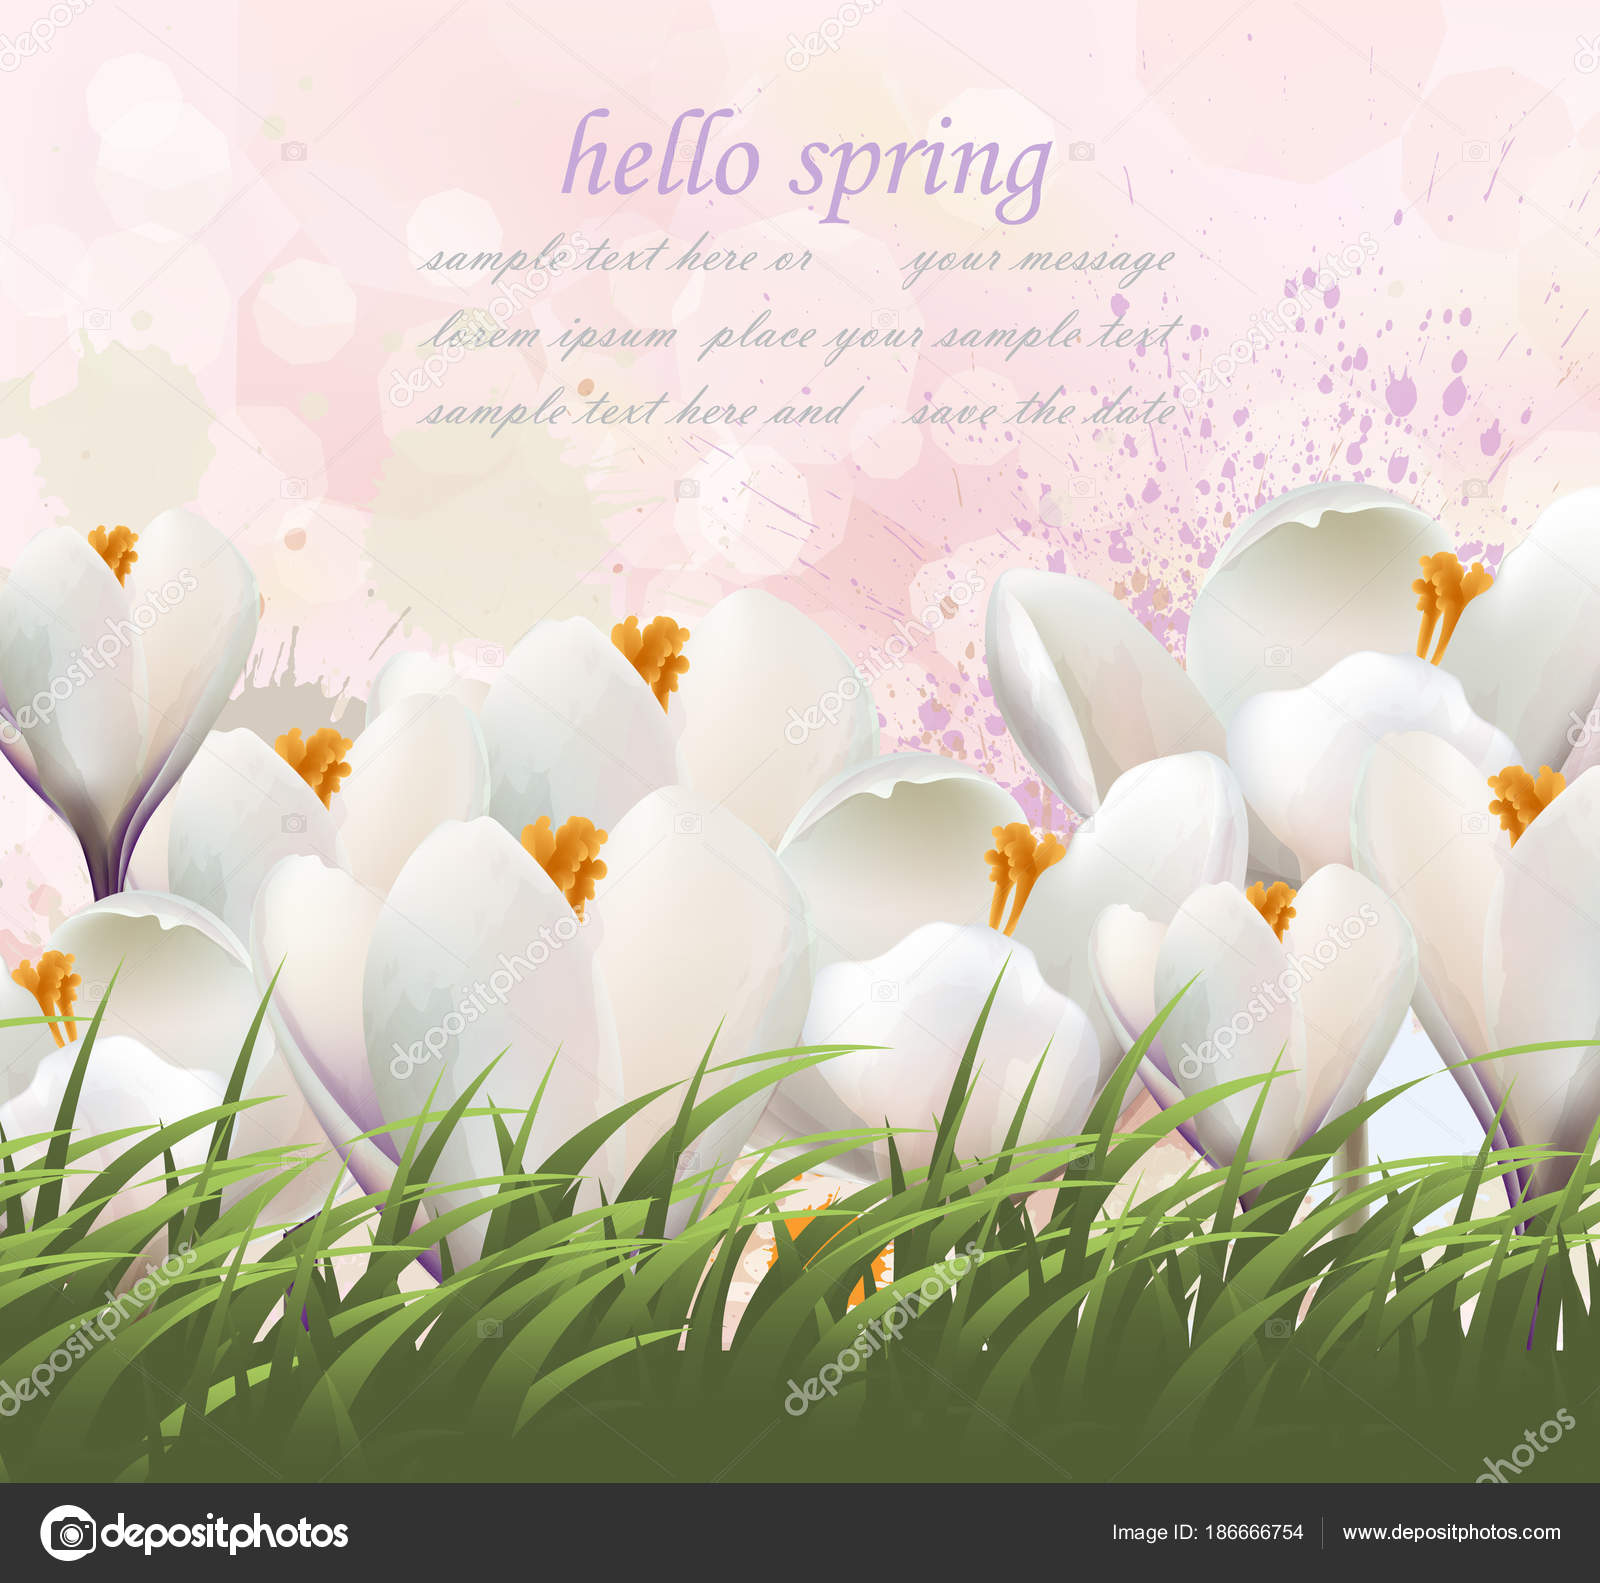 Hello Spring Flowers Card Vector Watercolor White And Grass Lovely Greeting Colorful Splash Illustration Background By Inagraurymail